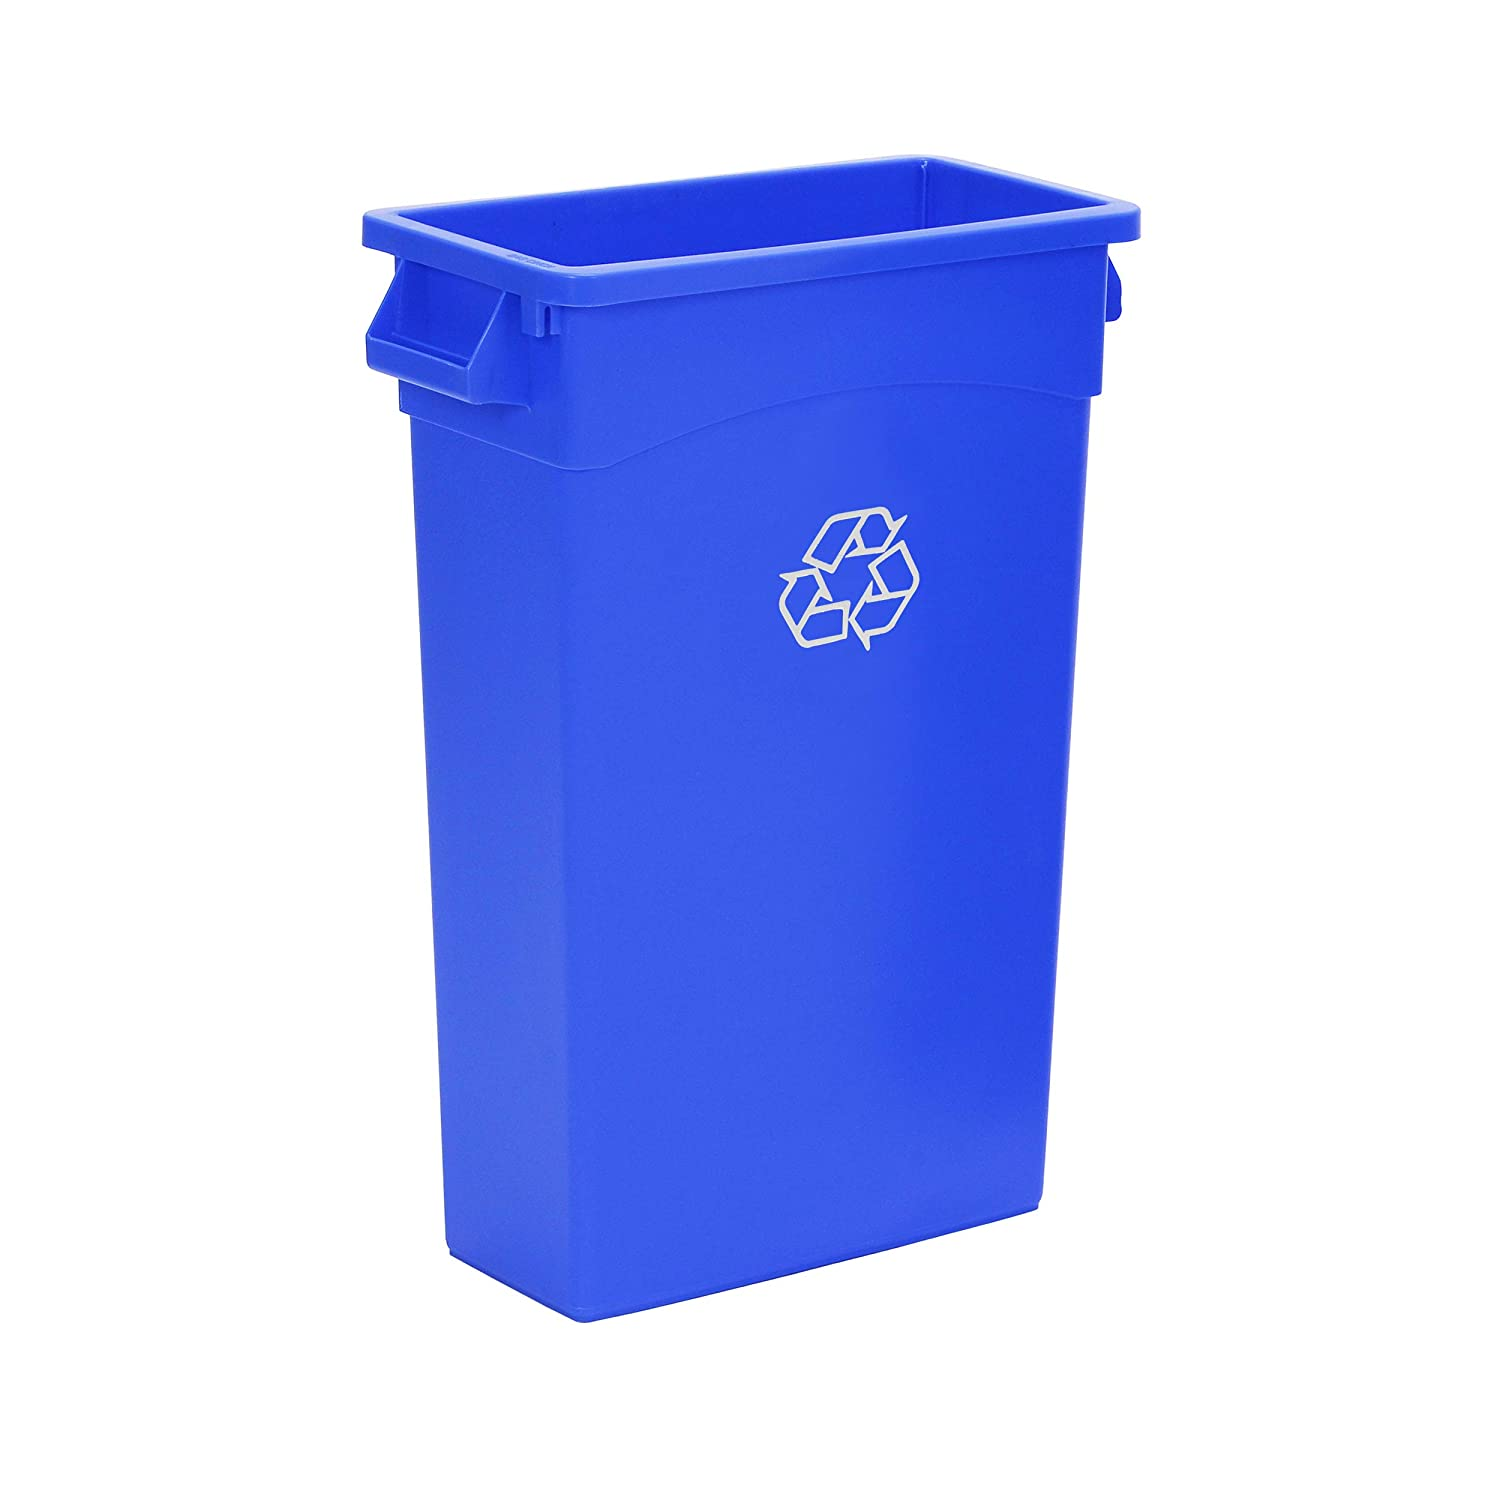 AmazonCommercial 23 Gallon Commercial Slim Trash Can, Blue w/Recycle Logo, 1-pack